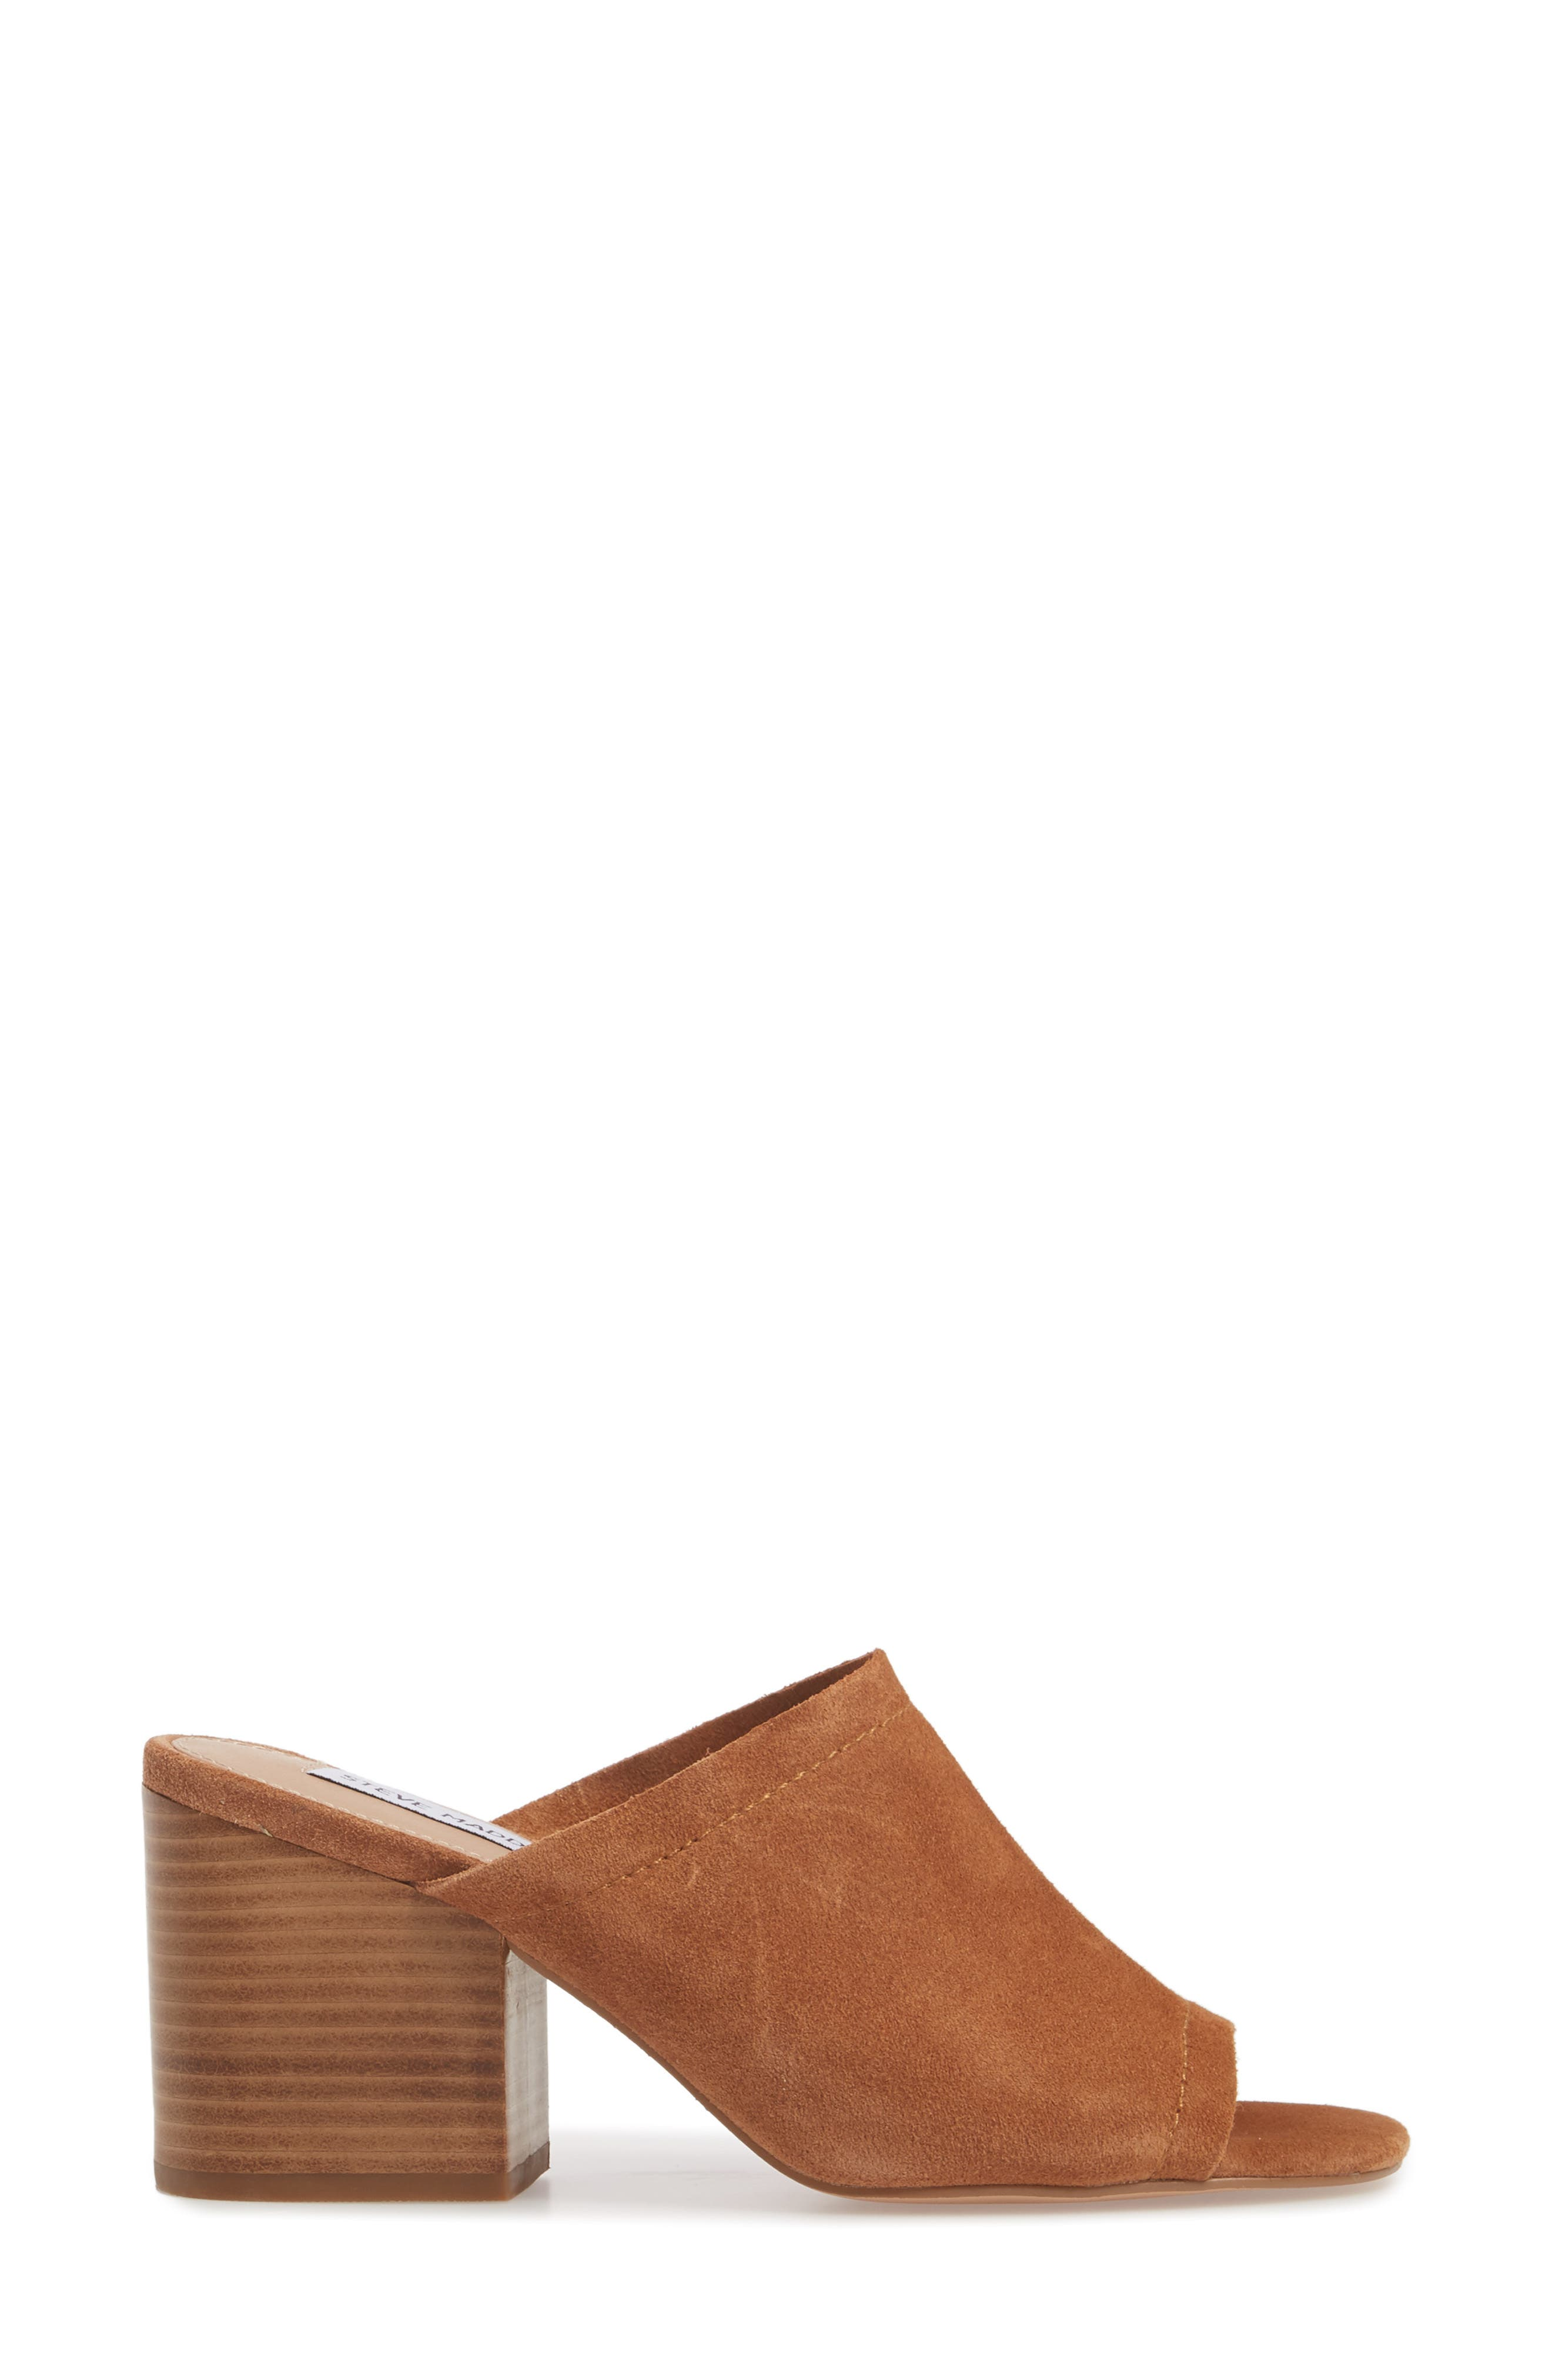 Doran Mule Sandal,                             Alternate thumbnail 3, color,                             CHESTNUT SUEDE